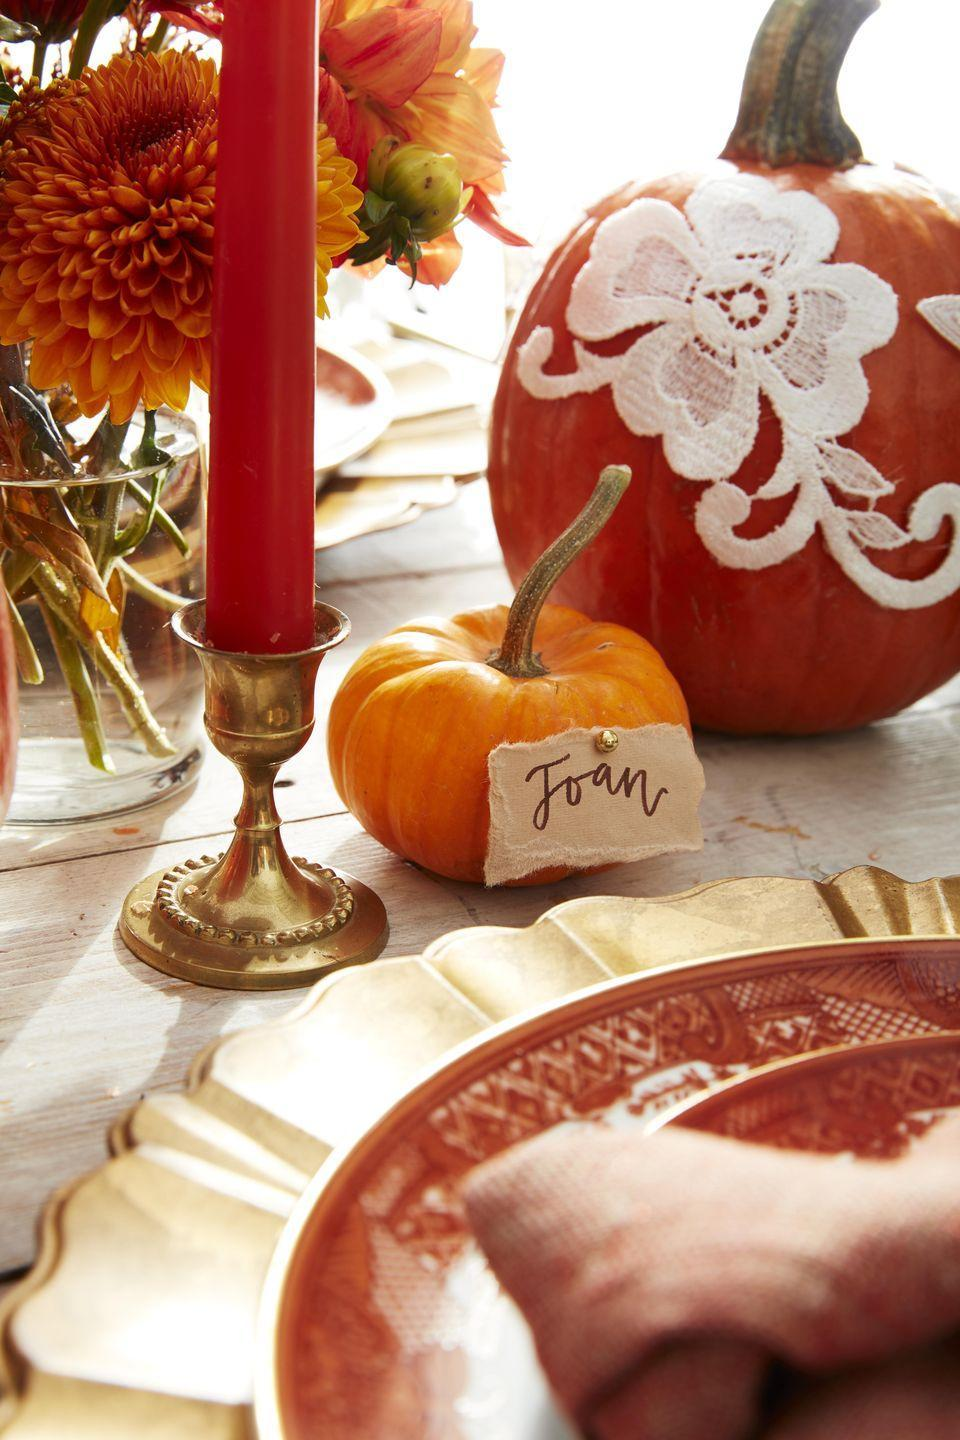 """<p>All it take is a fancy gold push pin and rough torn card stock to turn the cutest mini pumpkin into a greet your guests place card.</p><p><a class=""""link rapid-noclick-resp"""" href=""""https://www.amazon.com/AmazonBasics-Pines-plástico-punta-Dorado/dp/B07VLZ4DC8/ref=sr_1_1_sspa?tag=syn-yahoo-20&ascsubtag=%5Bartid%7C10050.g.1371%5Bsrc%7Cyahoo-us"""" rel=""""nofollow noopener"""" target=""""_blank"""" data-ylk=""""slk:SHOP GOLD PUSHPINS"""">SHOP GOLD PUSHPINS</a></p>"""